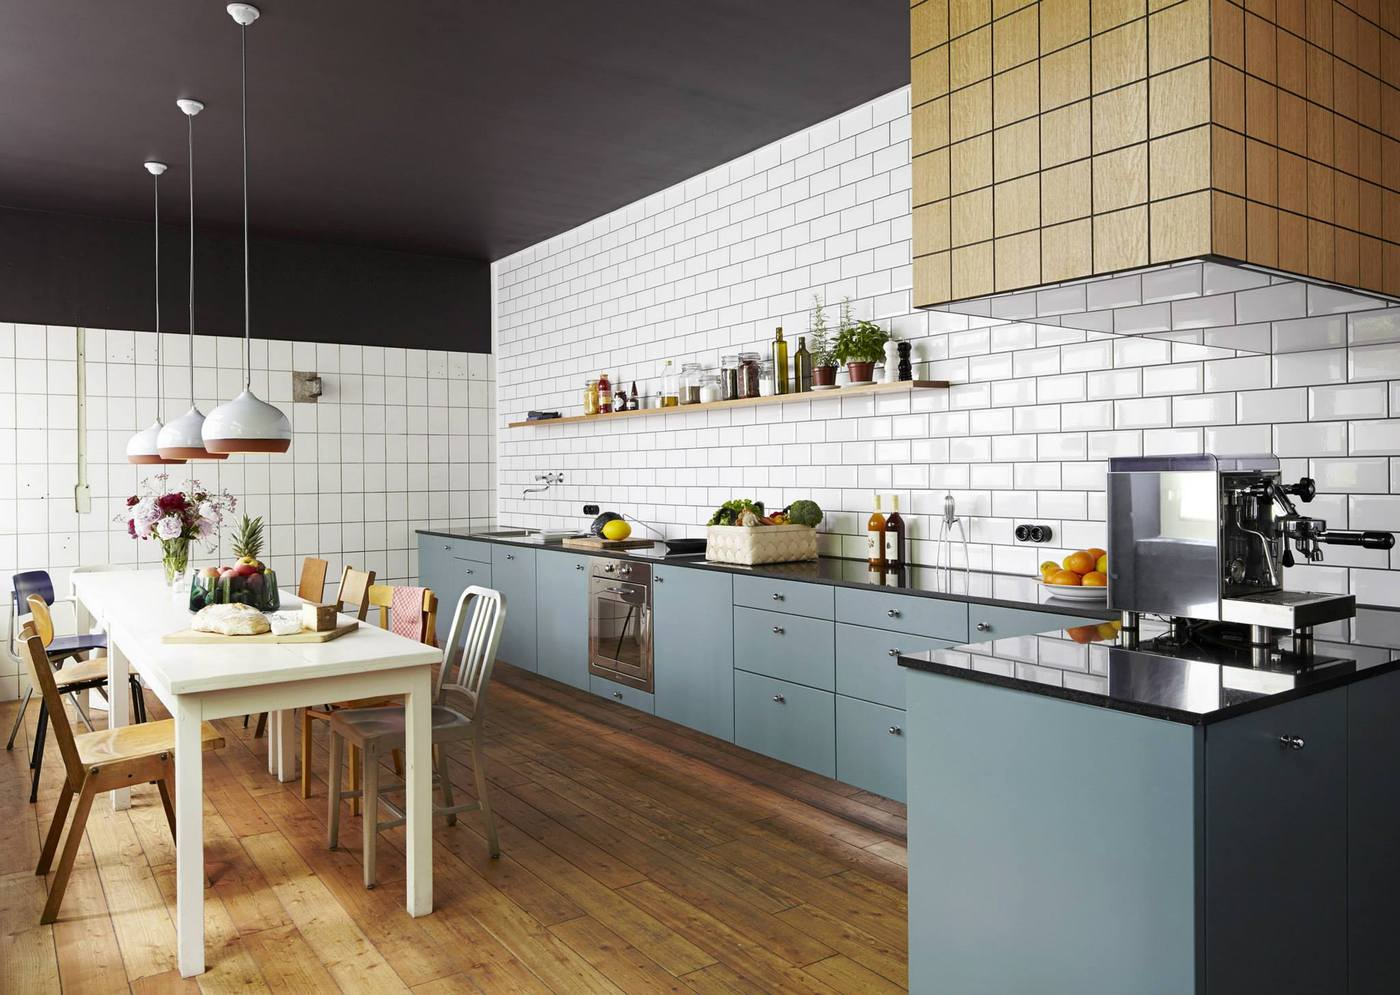 Subway tile kitchen ideas home design view in gallery compare these two amazingly similar but different kitchens 1 thumb 630xauto 53801 white outstanding glass subway tile dailygadgetfo Image collections